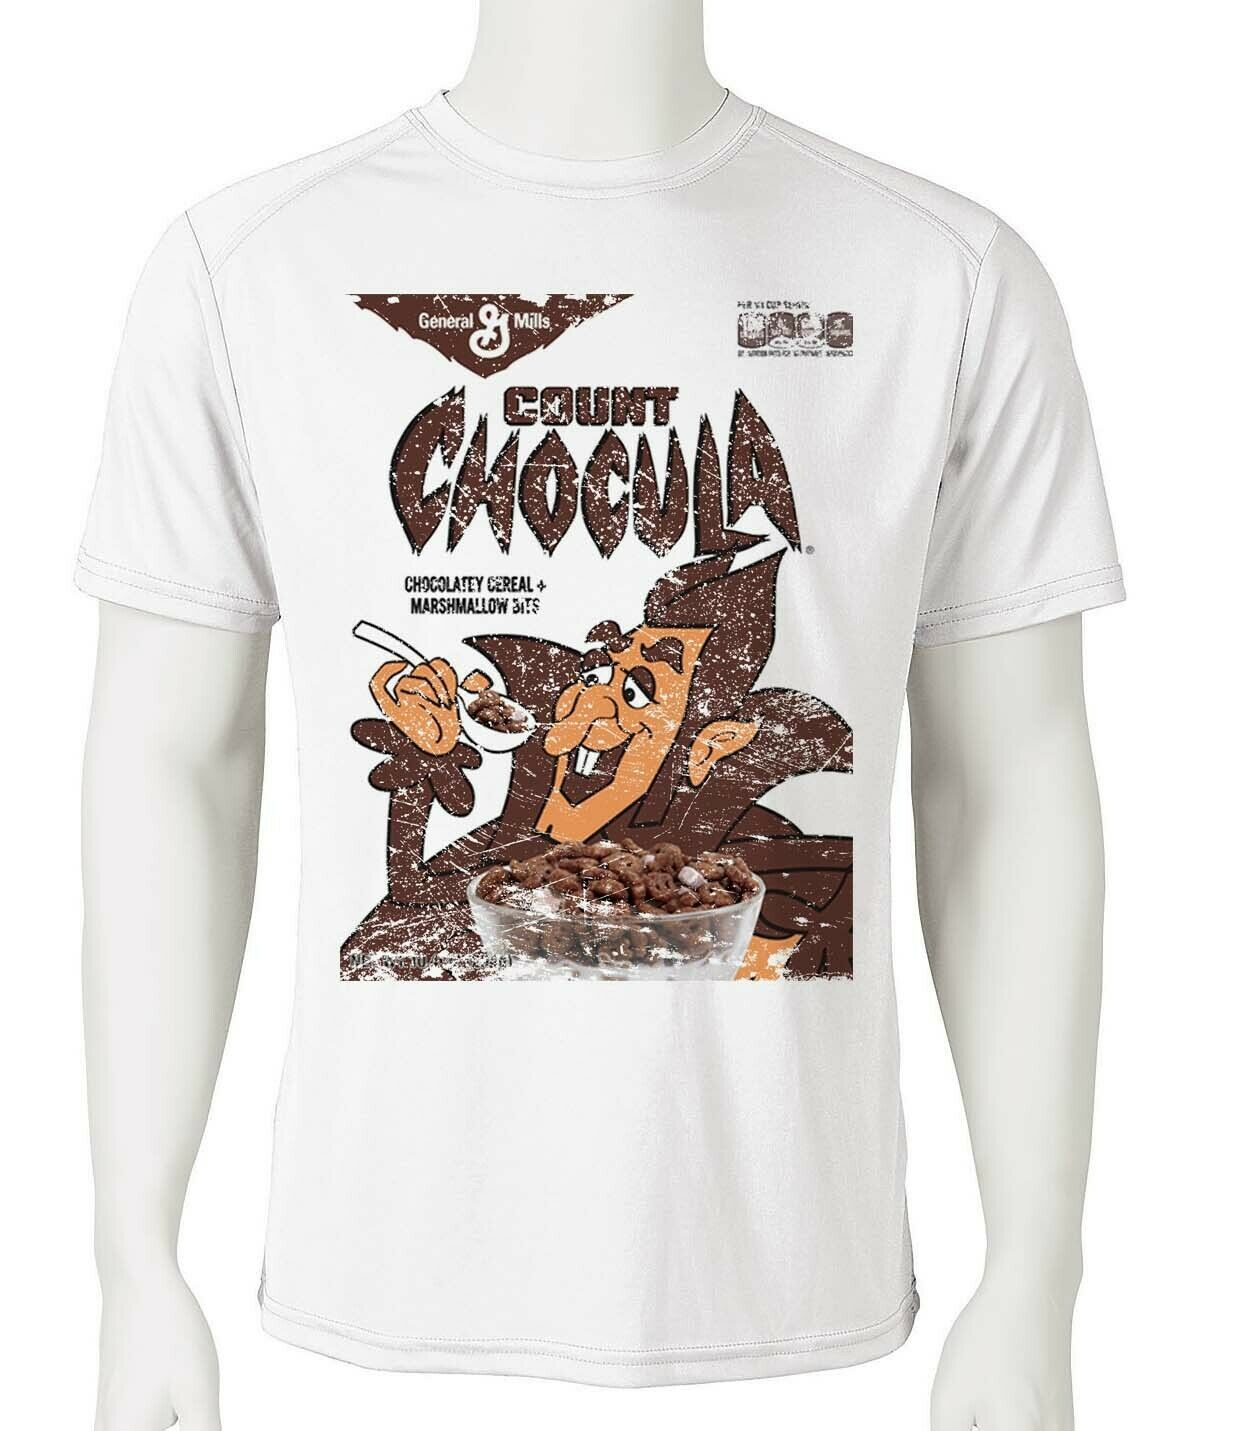 Count Chocula Dri Fit graphic T-shirt moisture wicking monster cereal SPF tee